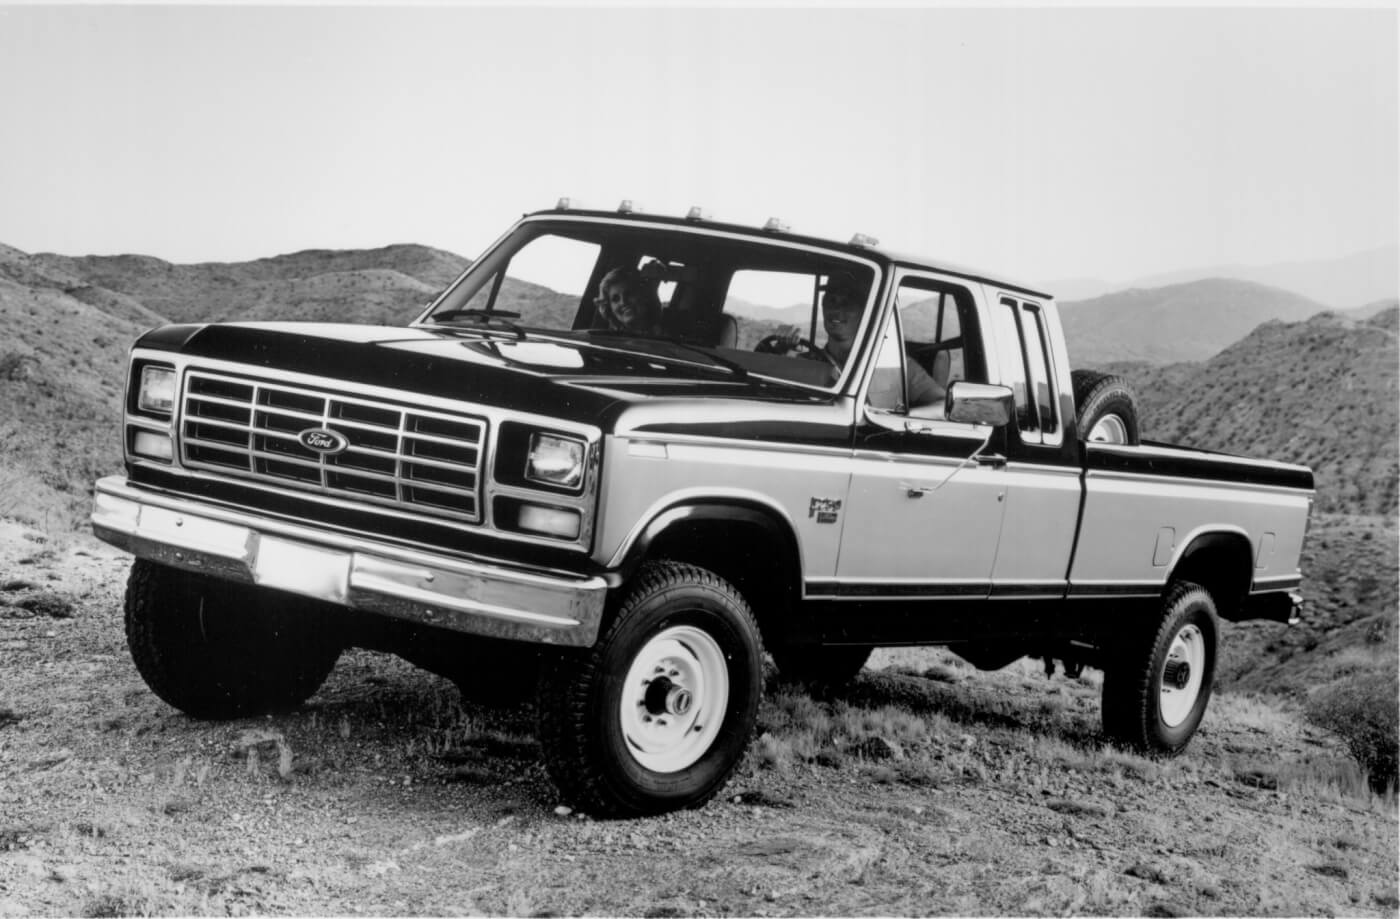 Fords 1st Diesel Pickup Engine 1986 Dodge Ram D250 Pictures Only The Ford Was In Full Swing When This 1984 F 250hd 4x4 Xl Made